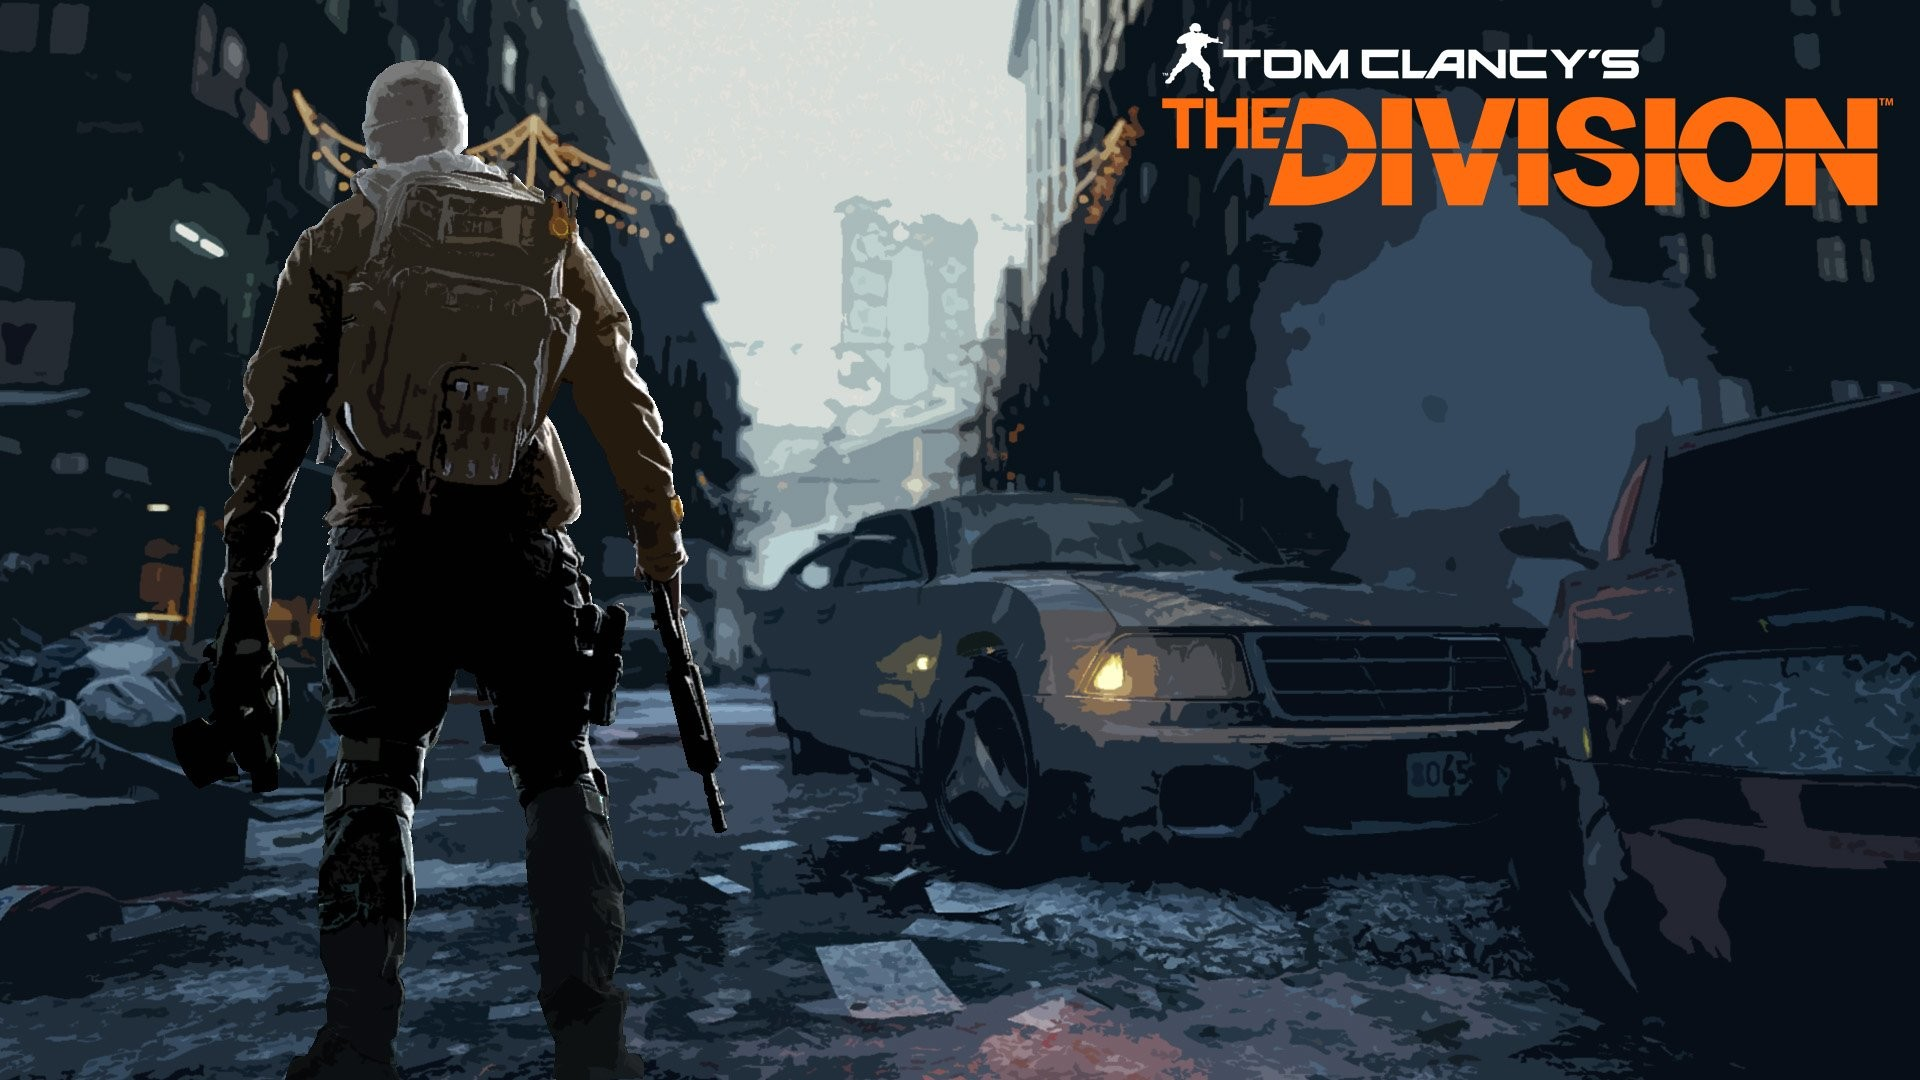 … tom clancys the division wallpaper awesome images 180qp8d246 …